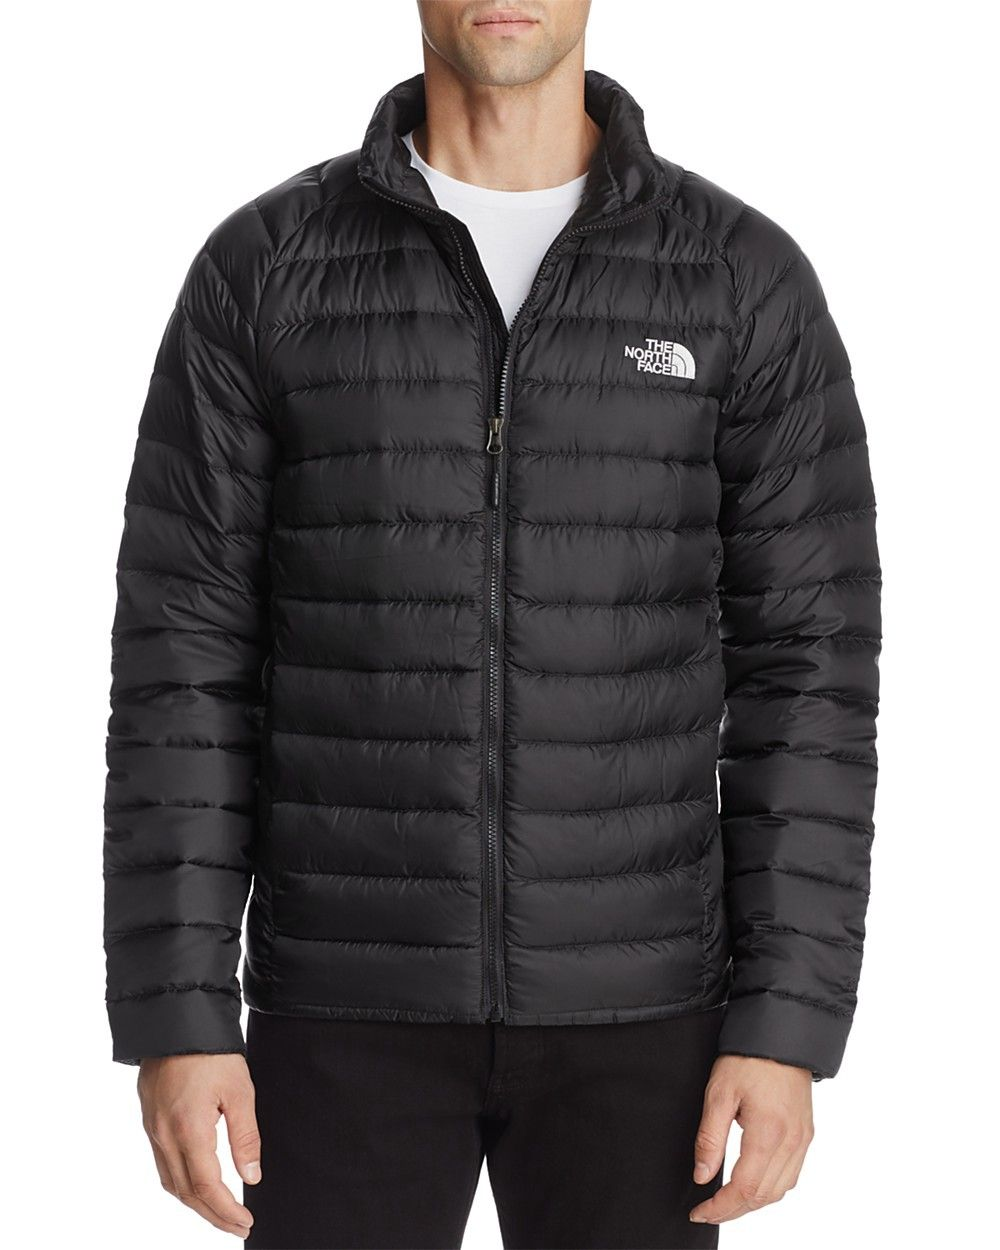 The North Face The North Face Trevail Puffer Jacket Thenorthface Cloth Jackets Puffer Jackets The North Face [ 1250 x 1000 Pixel ]